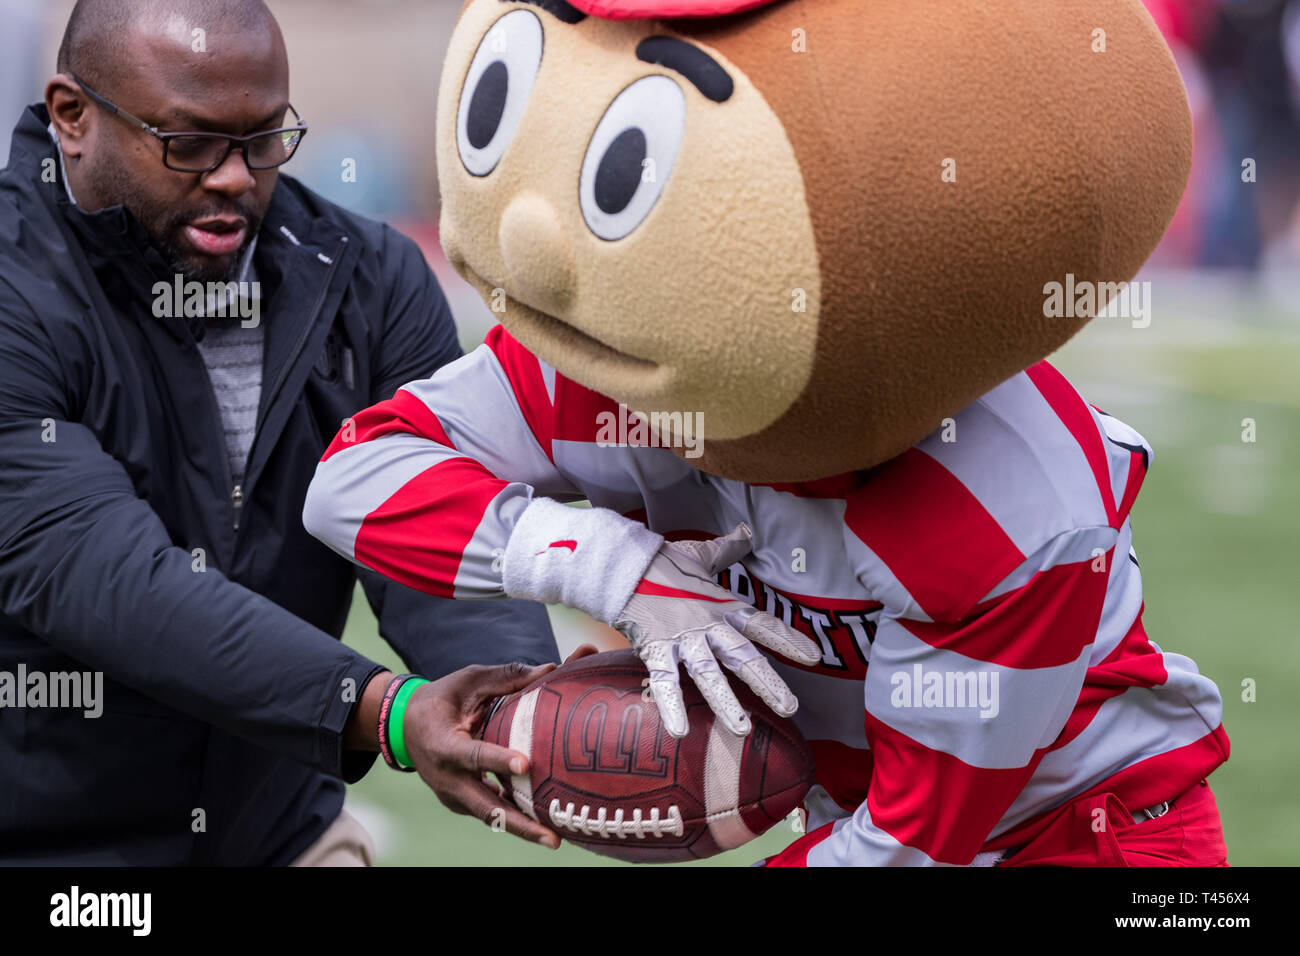 Columbus, Ohio, USA. 13th Apr, 2019. Ohio State Buckeyes mascot Brutus takes a handoff during warm up prior to the Ohio State spring game between the Scarlet and Gray at Ohio Stadium, Columbus, Ohio. Credit: Scott Stuart/ZUMA Wire/Alamy Live News - Stock Image